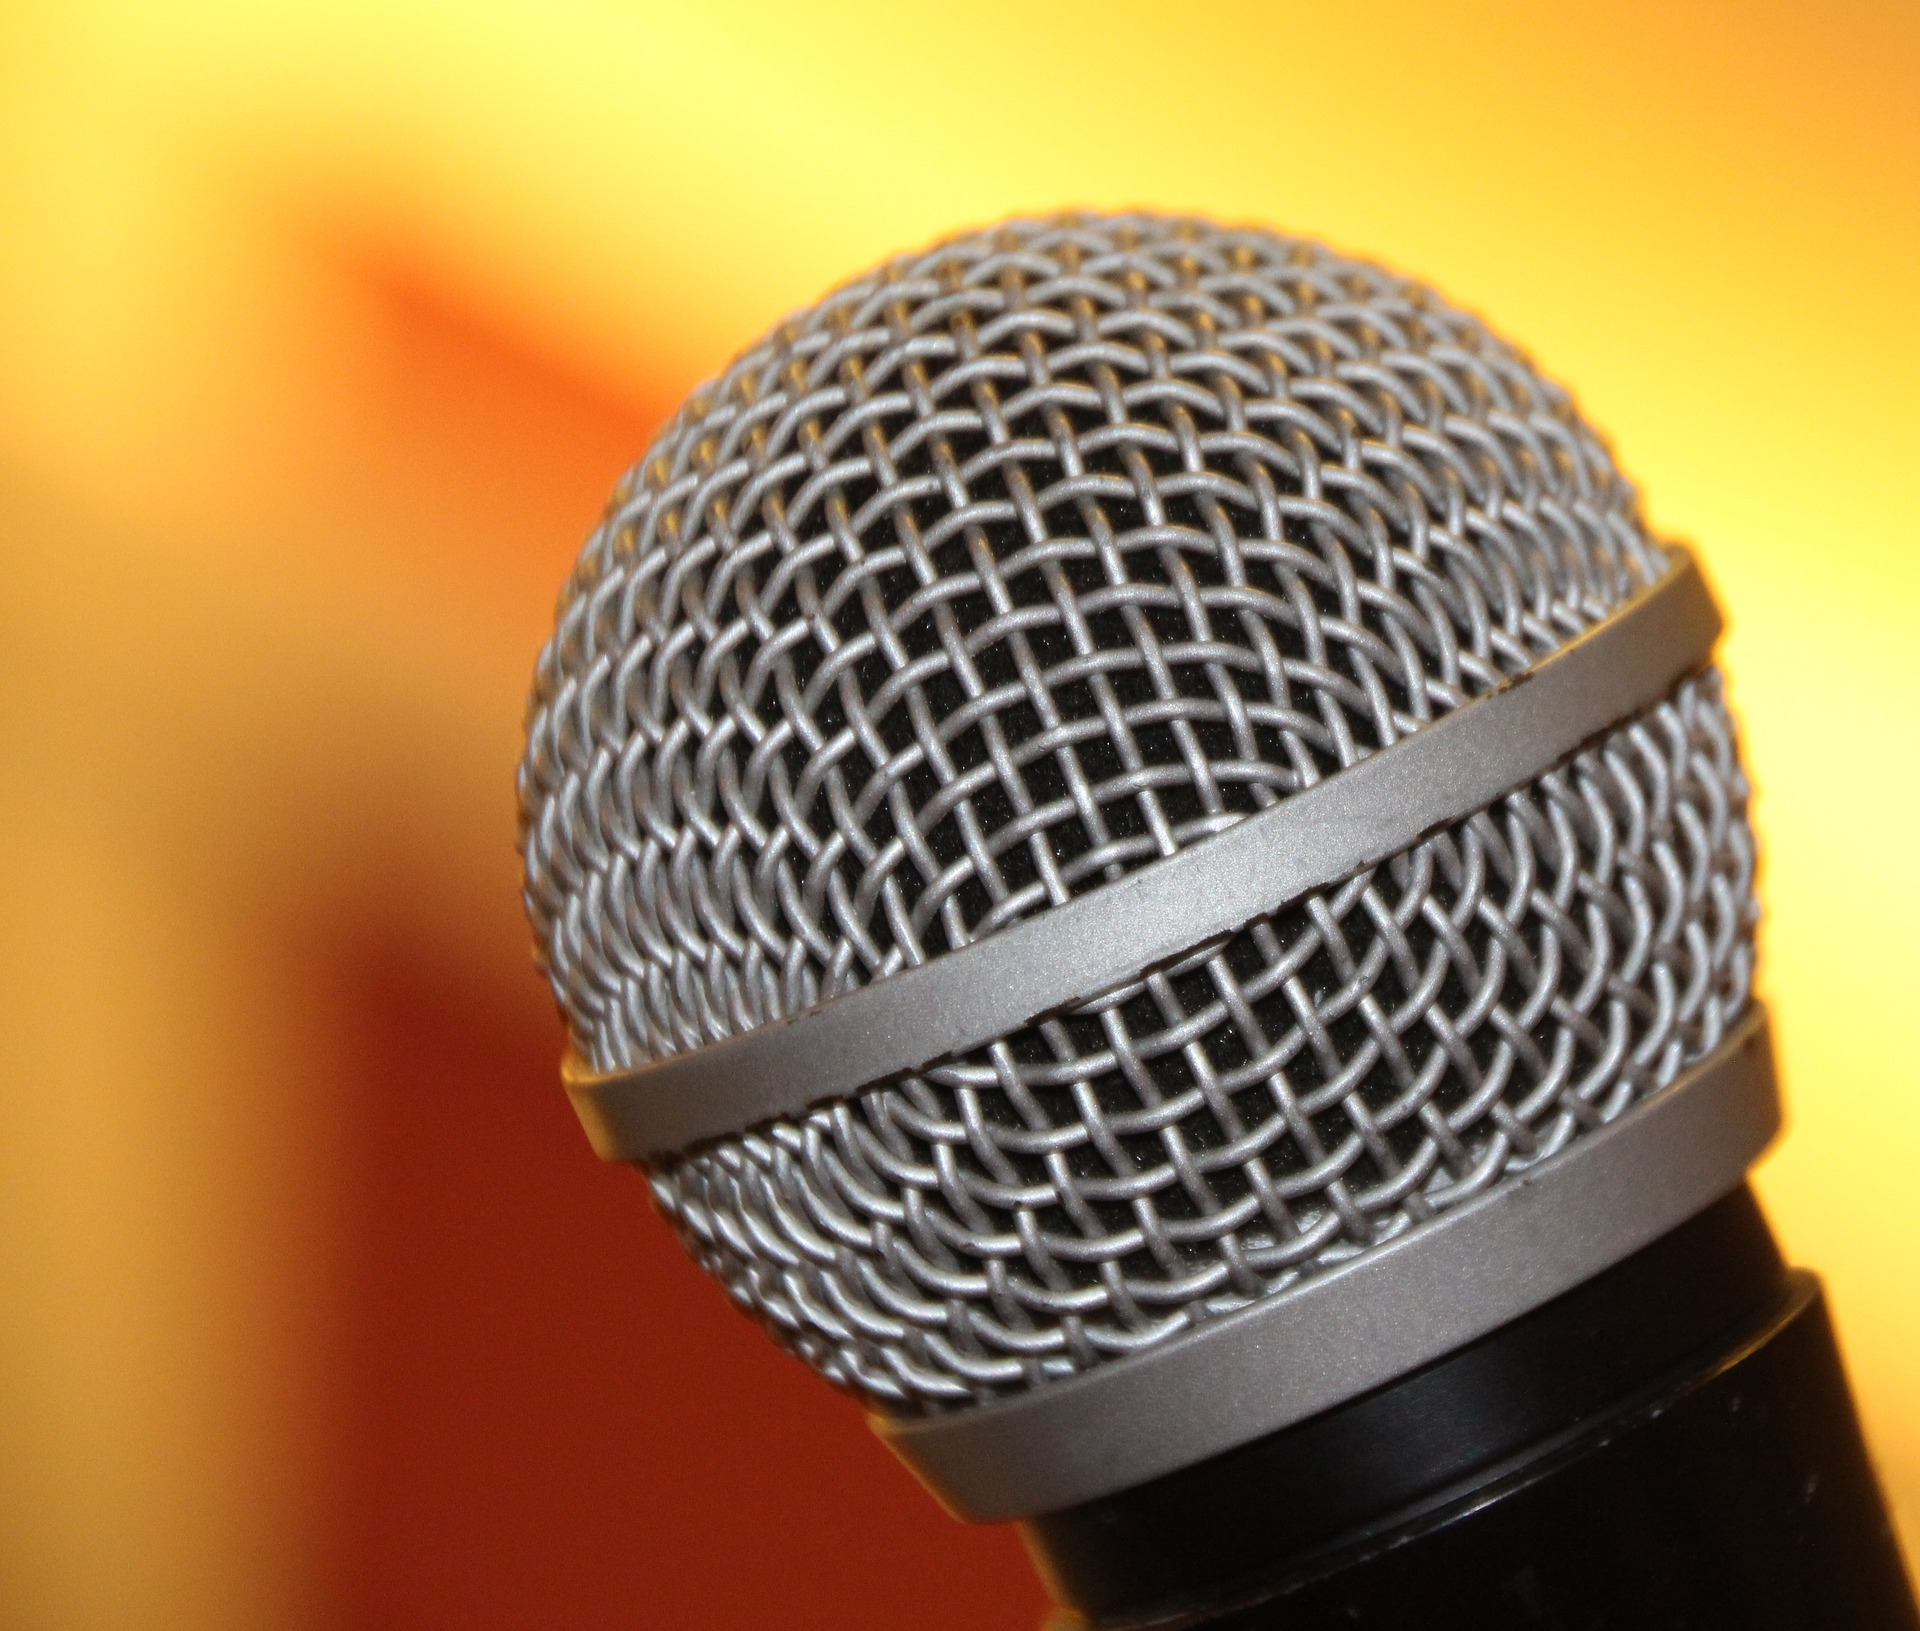 microphone-1687639_1920